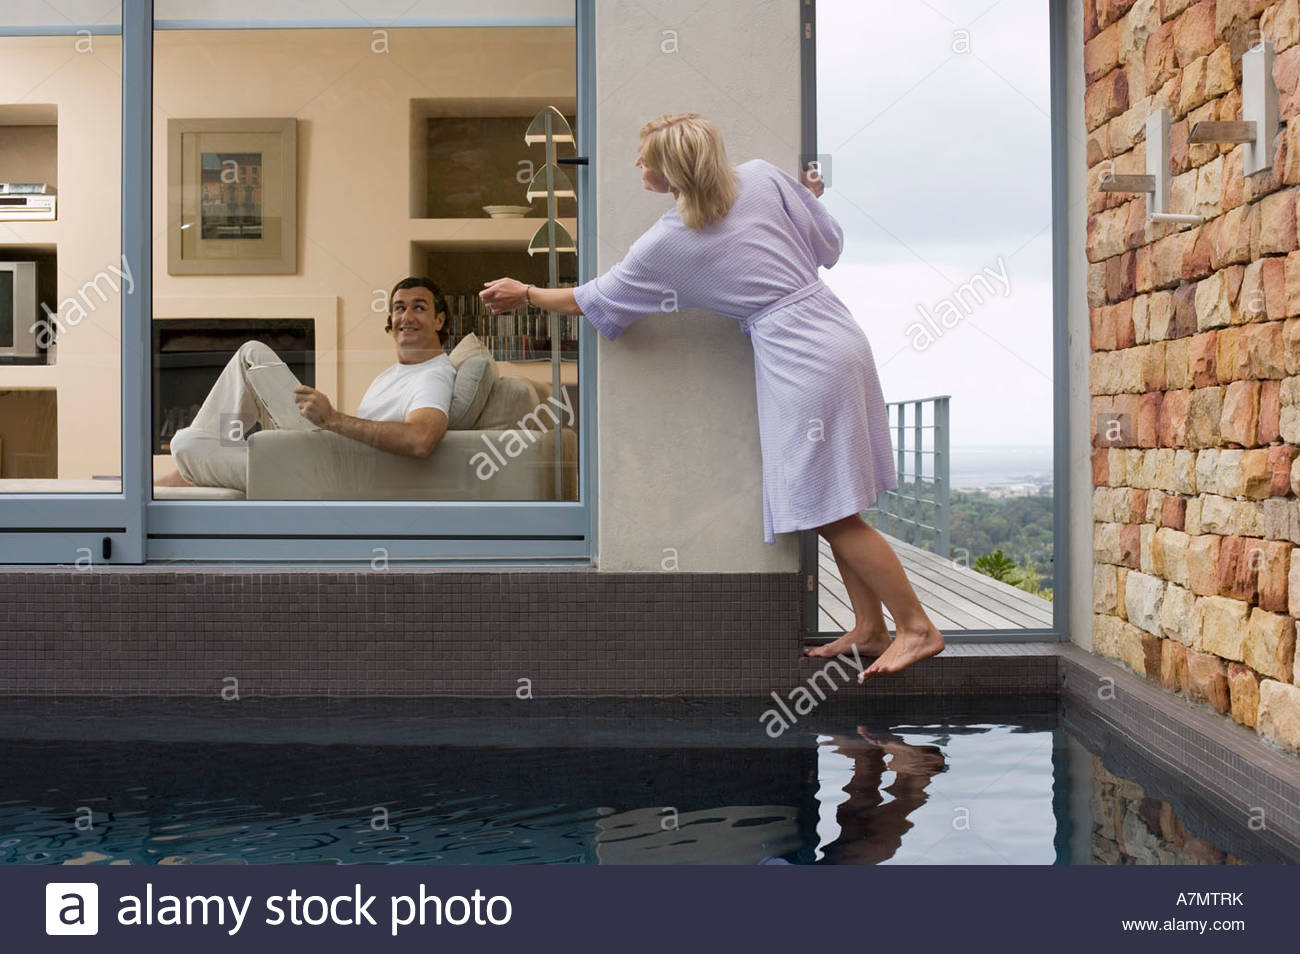 sofas on credit for unemployed sectional lazy boy man knocking door stock photos and